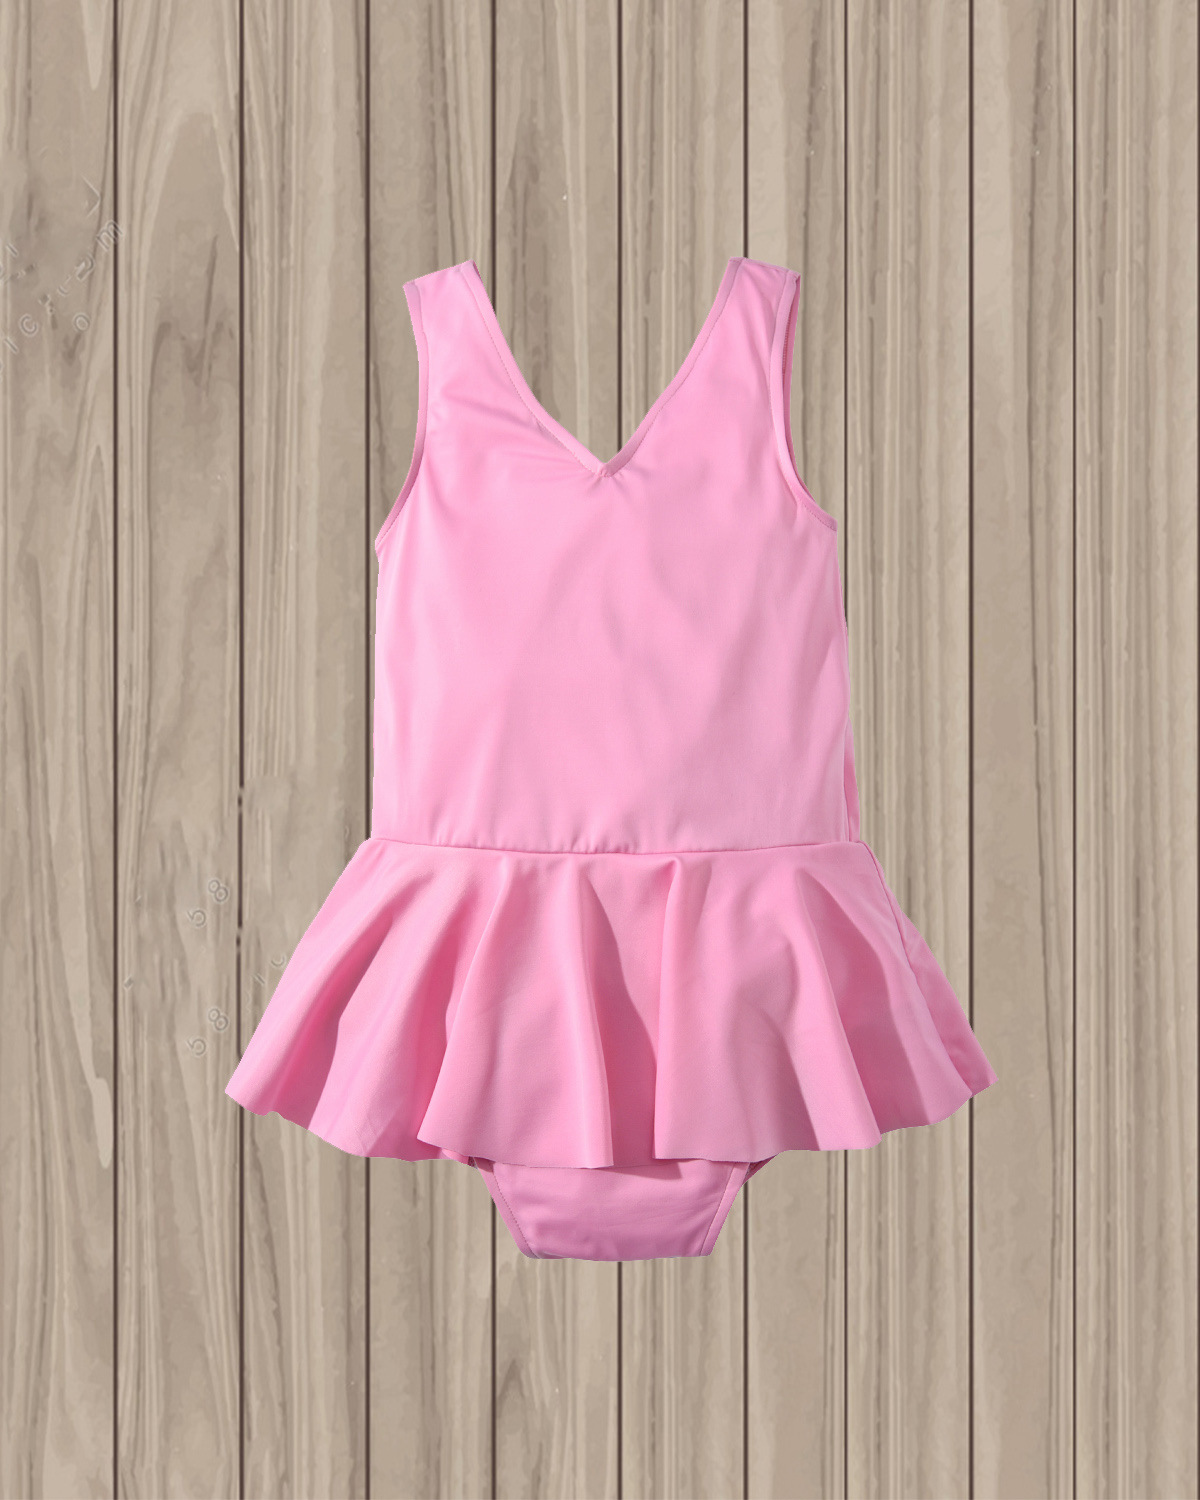 19 Years New Style KID'S Swimwear Europe And America Girls Solid Color Small Skirt Tour Bathing Suit GIRL'S Bow One-piece Swimwe